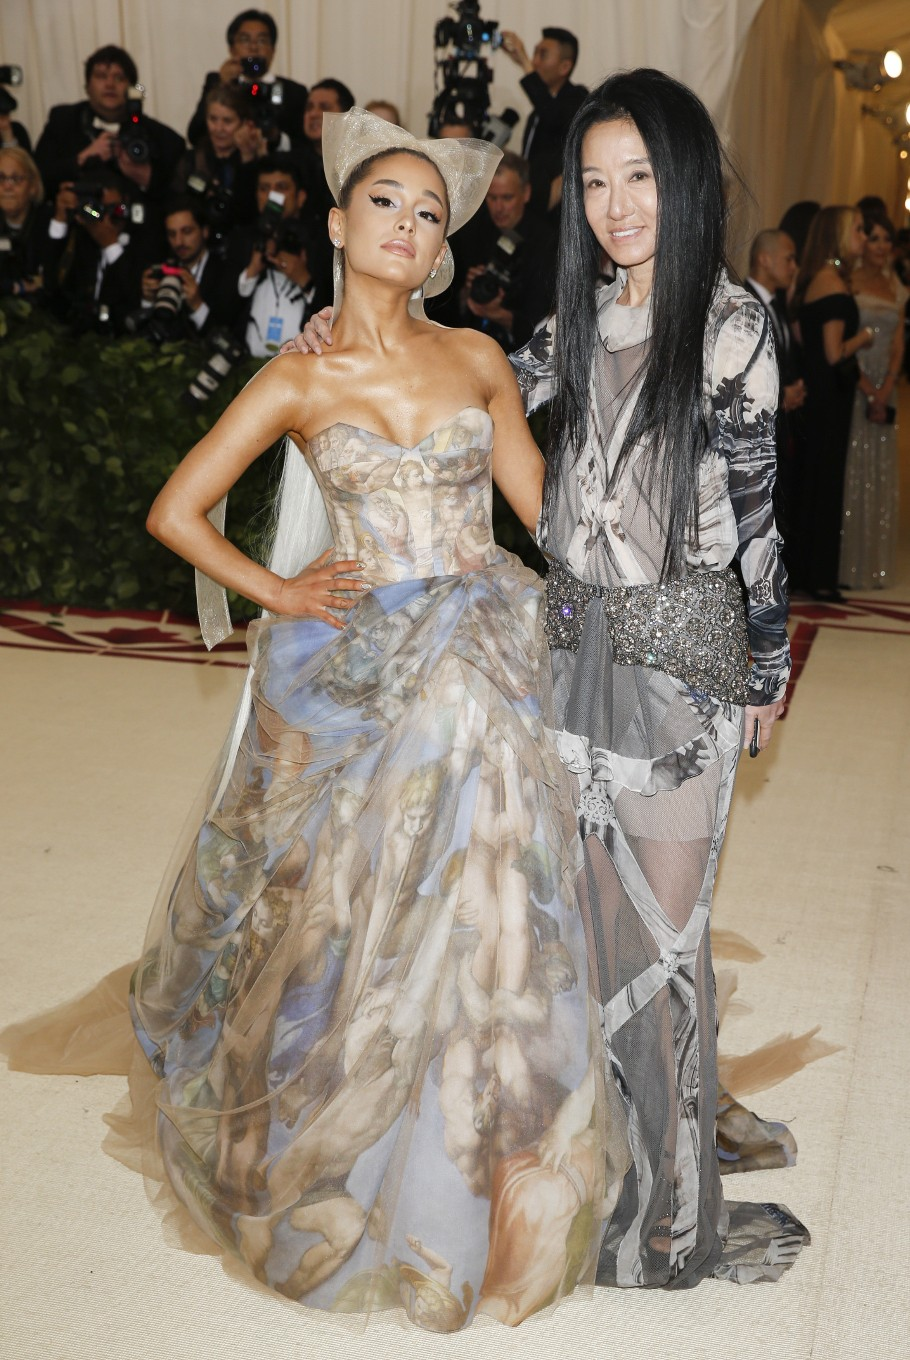 Singer Ariana Grande and designer Vera Wang arrive at the Metropolitan Museum of Art Costume Institute Gala (Met Gala) to celebrate the opening of 'Heavenly Bodies: Fashion and the Catholic Imagination' in the Manhattan borough of New York, U.S., May 7, 2018.